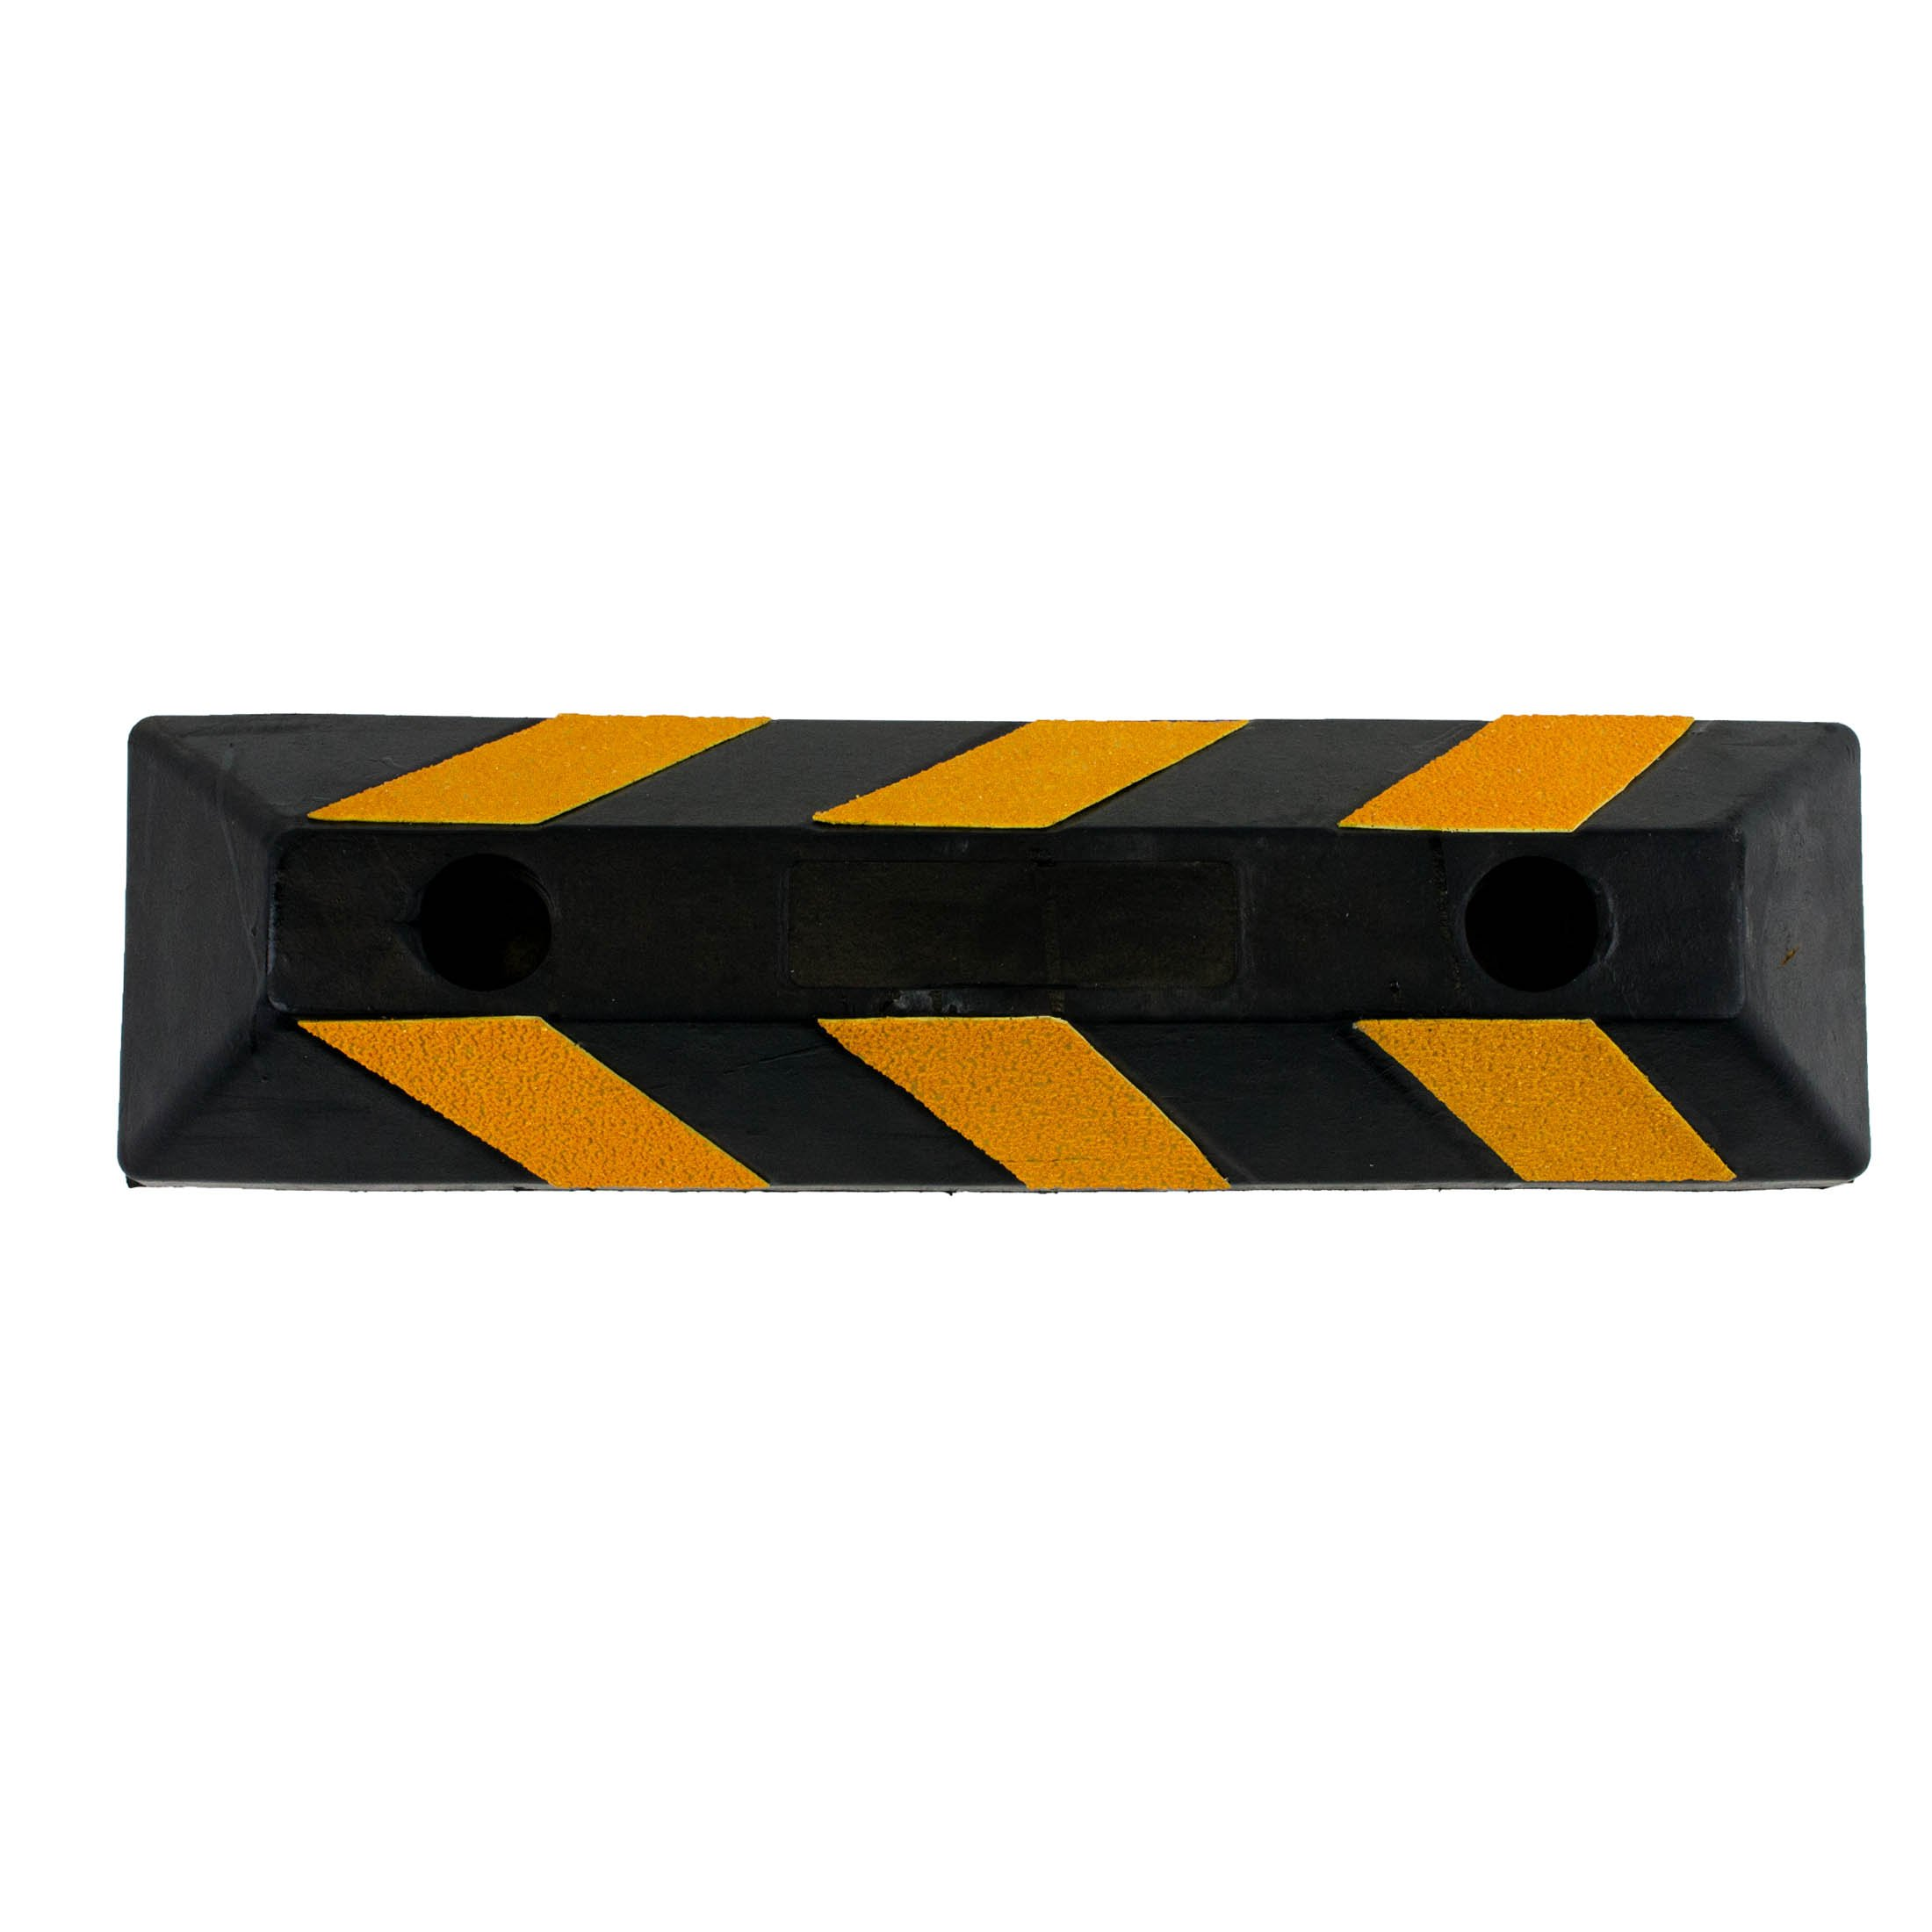 RK-BP22 Rubber Curb Truck Parking Block, 22 -Inch by RK (Image #3)